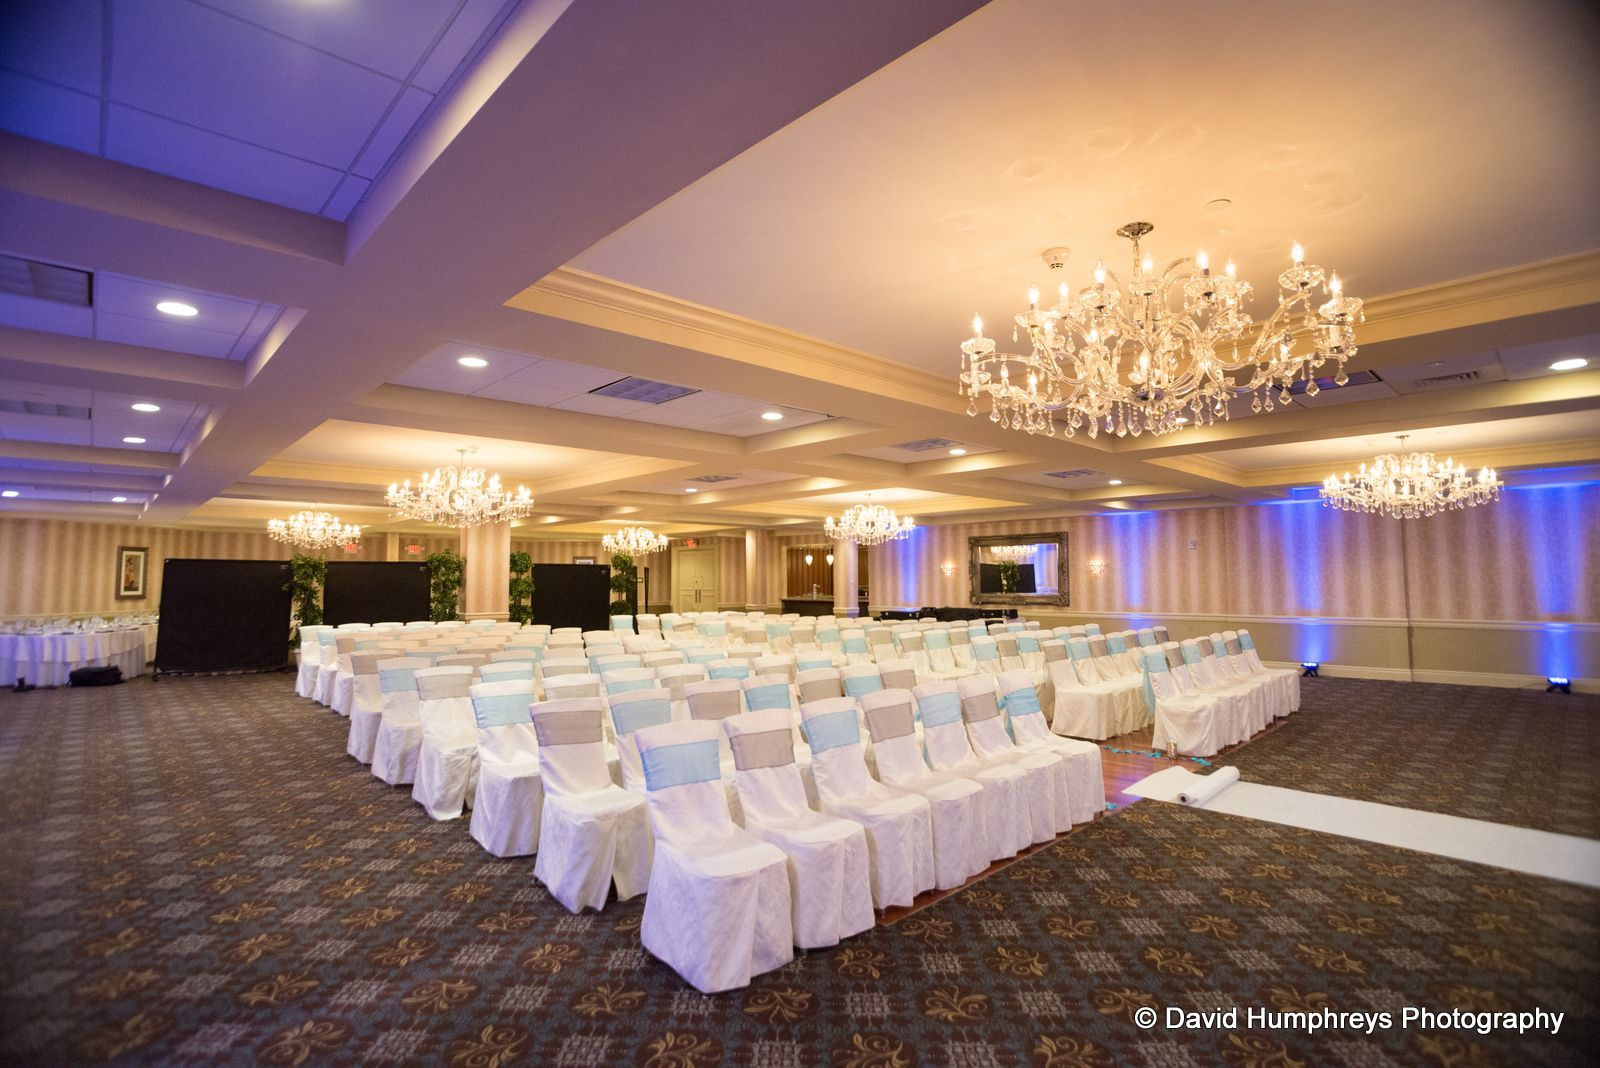 Pin by njwedding on new jersey weddings pinterest nj wedding pin by njwedding on new jersey weddings pinterest nj wedding venues wedding venues and banquet arubaitofo Gallery